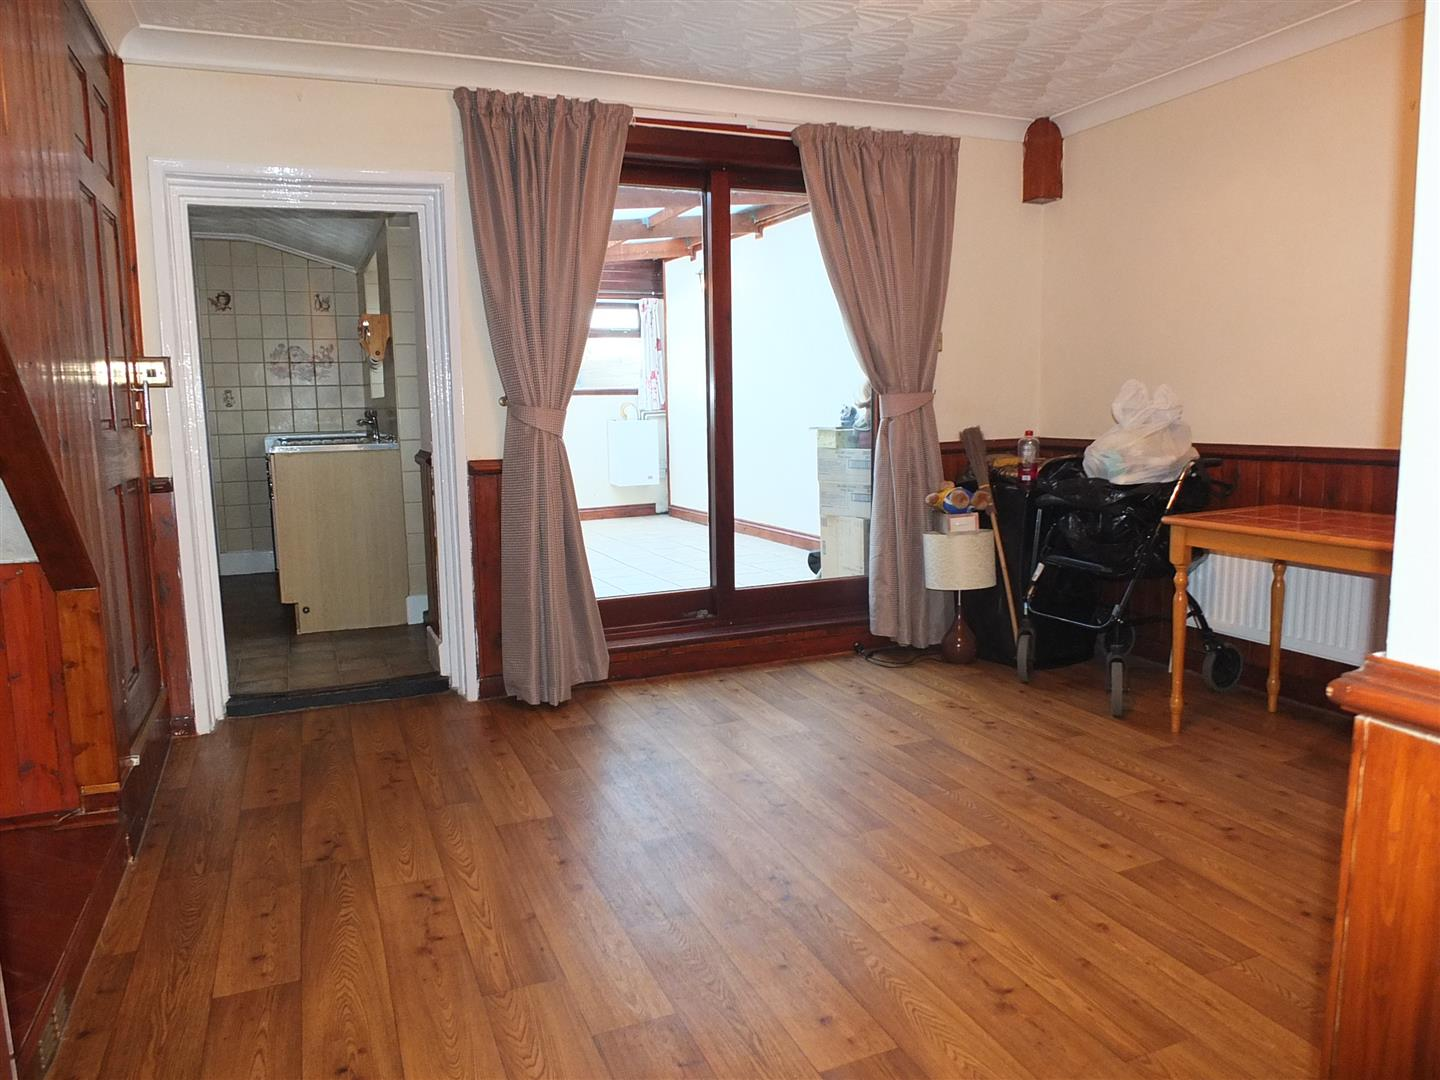 3 bed house to rent in Sutton Bridge Spalding, PE12 9UJ  - Property Image 3